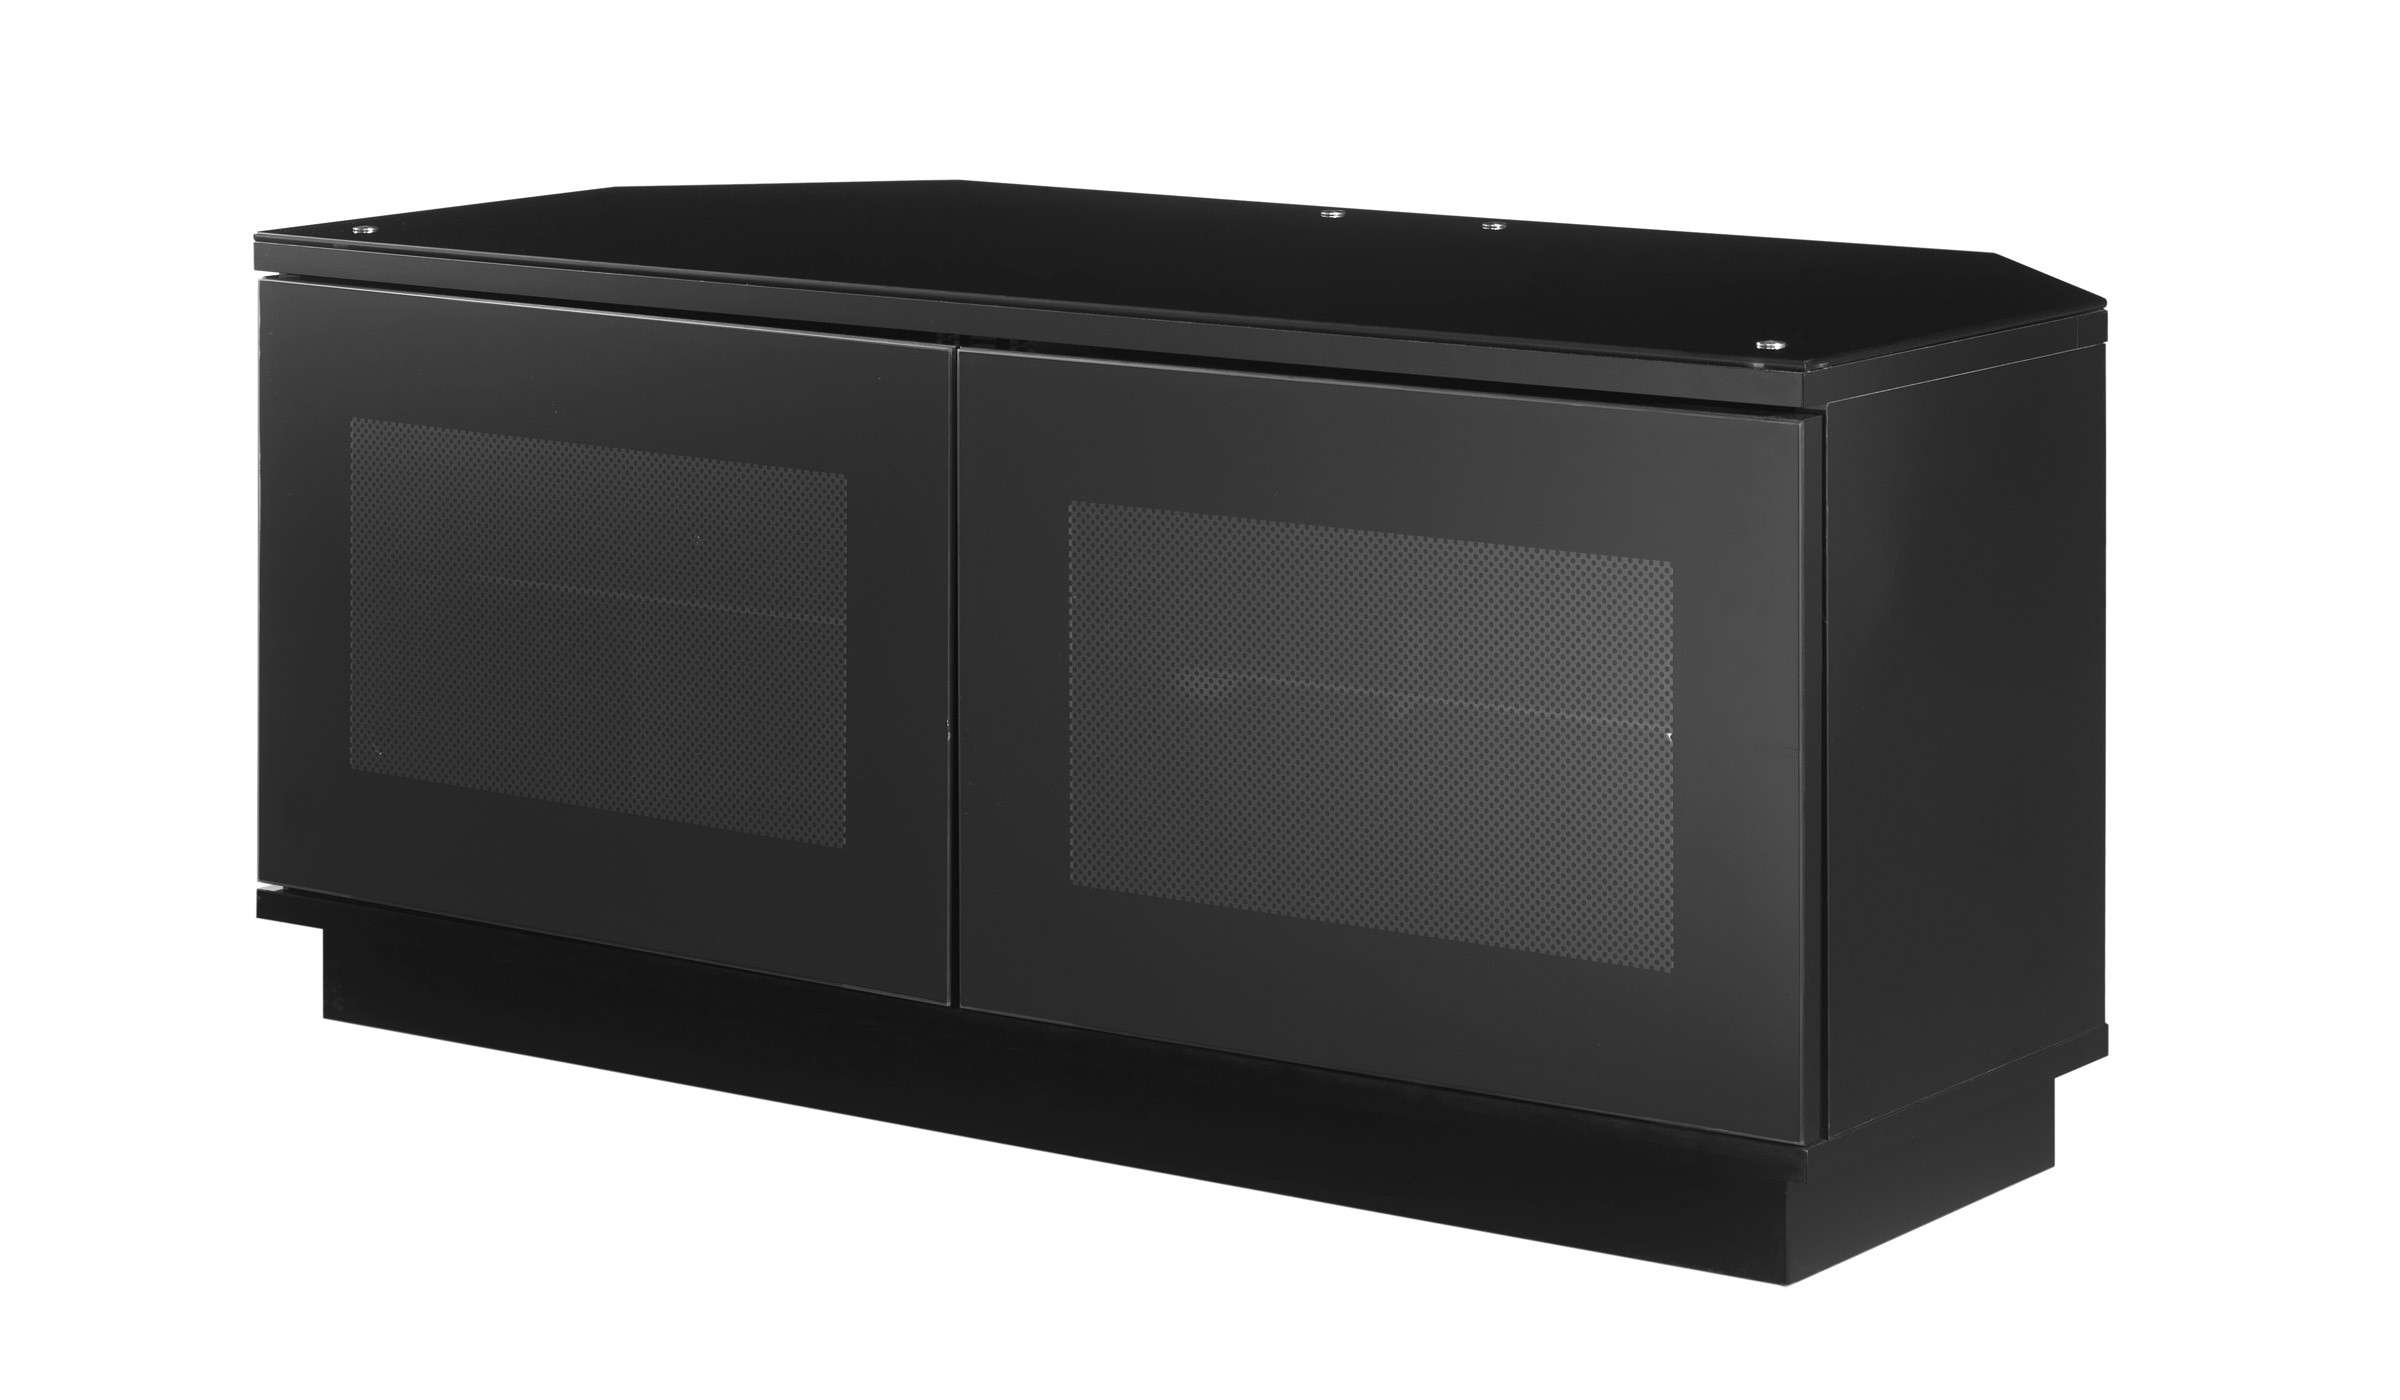 Small Black Tv Stand Cabinet With Door For Corner – Decofurnish Throughout Black Corner Tv Cabinets (View 13 of 20)